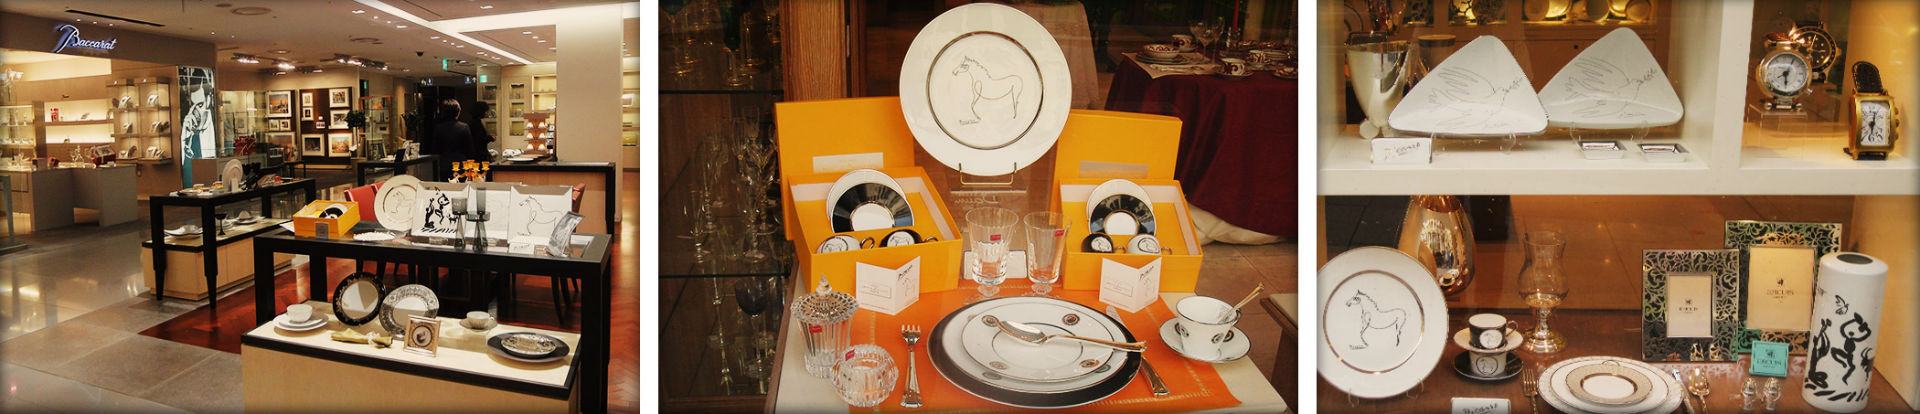 porcelain paris picasso plates shop scenography luxe luxury